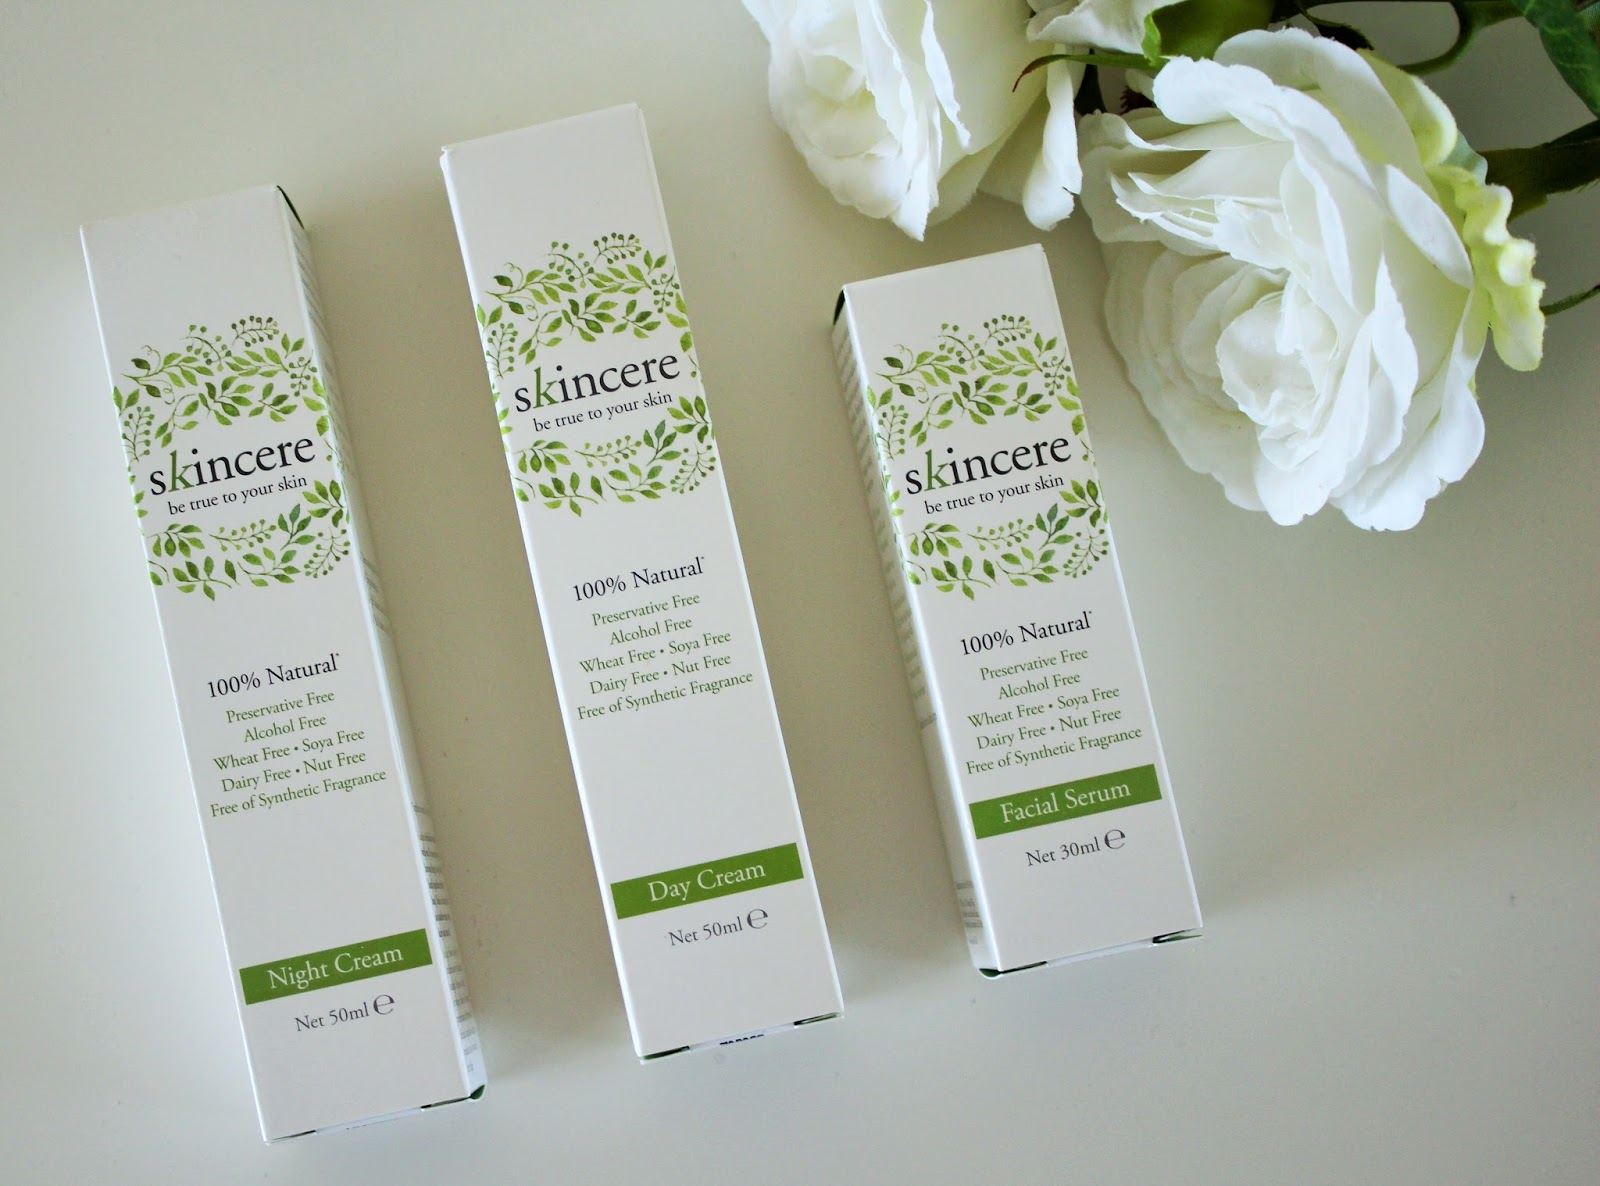 Skincere Natural Skincare Review 6